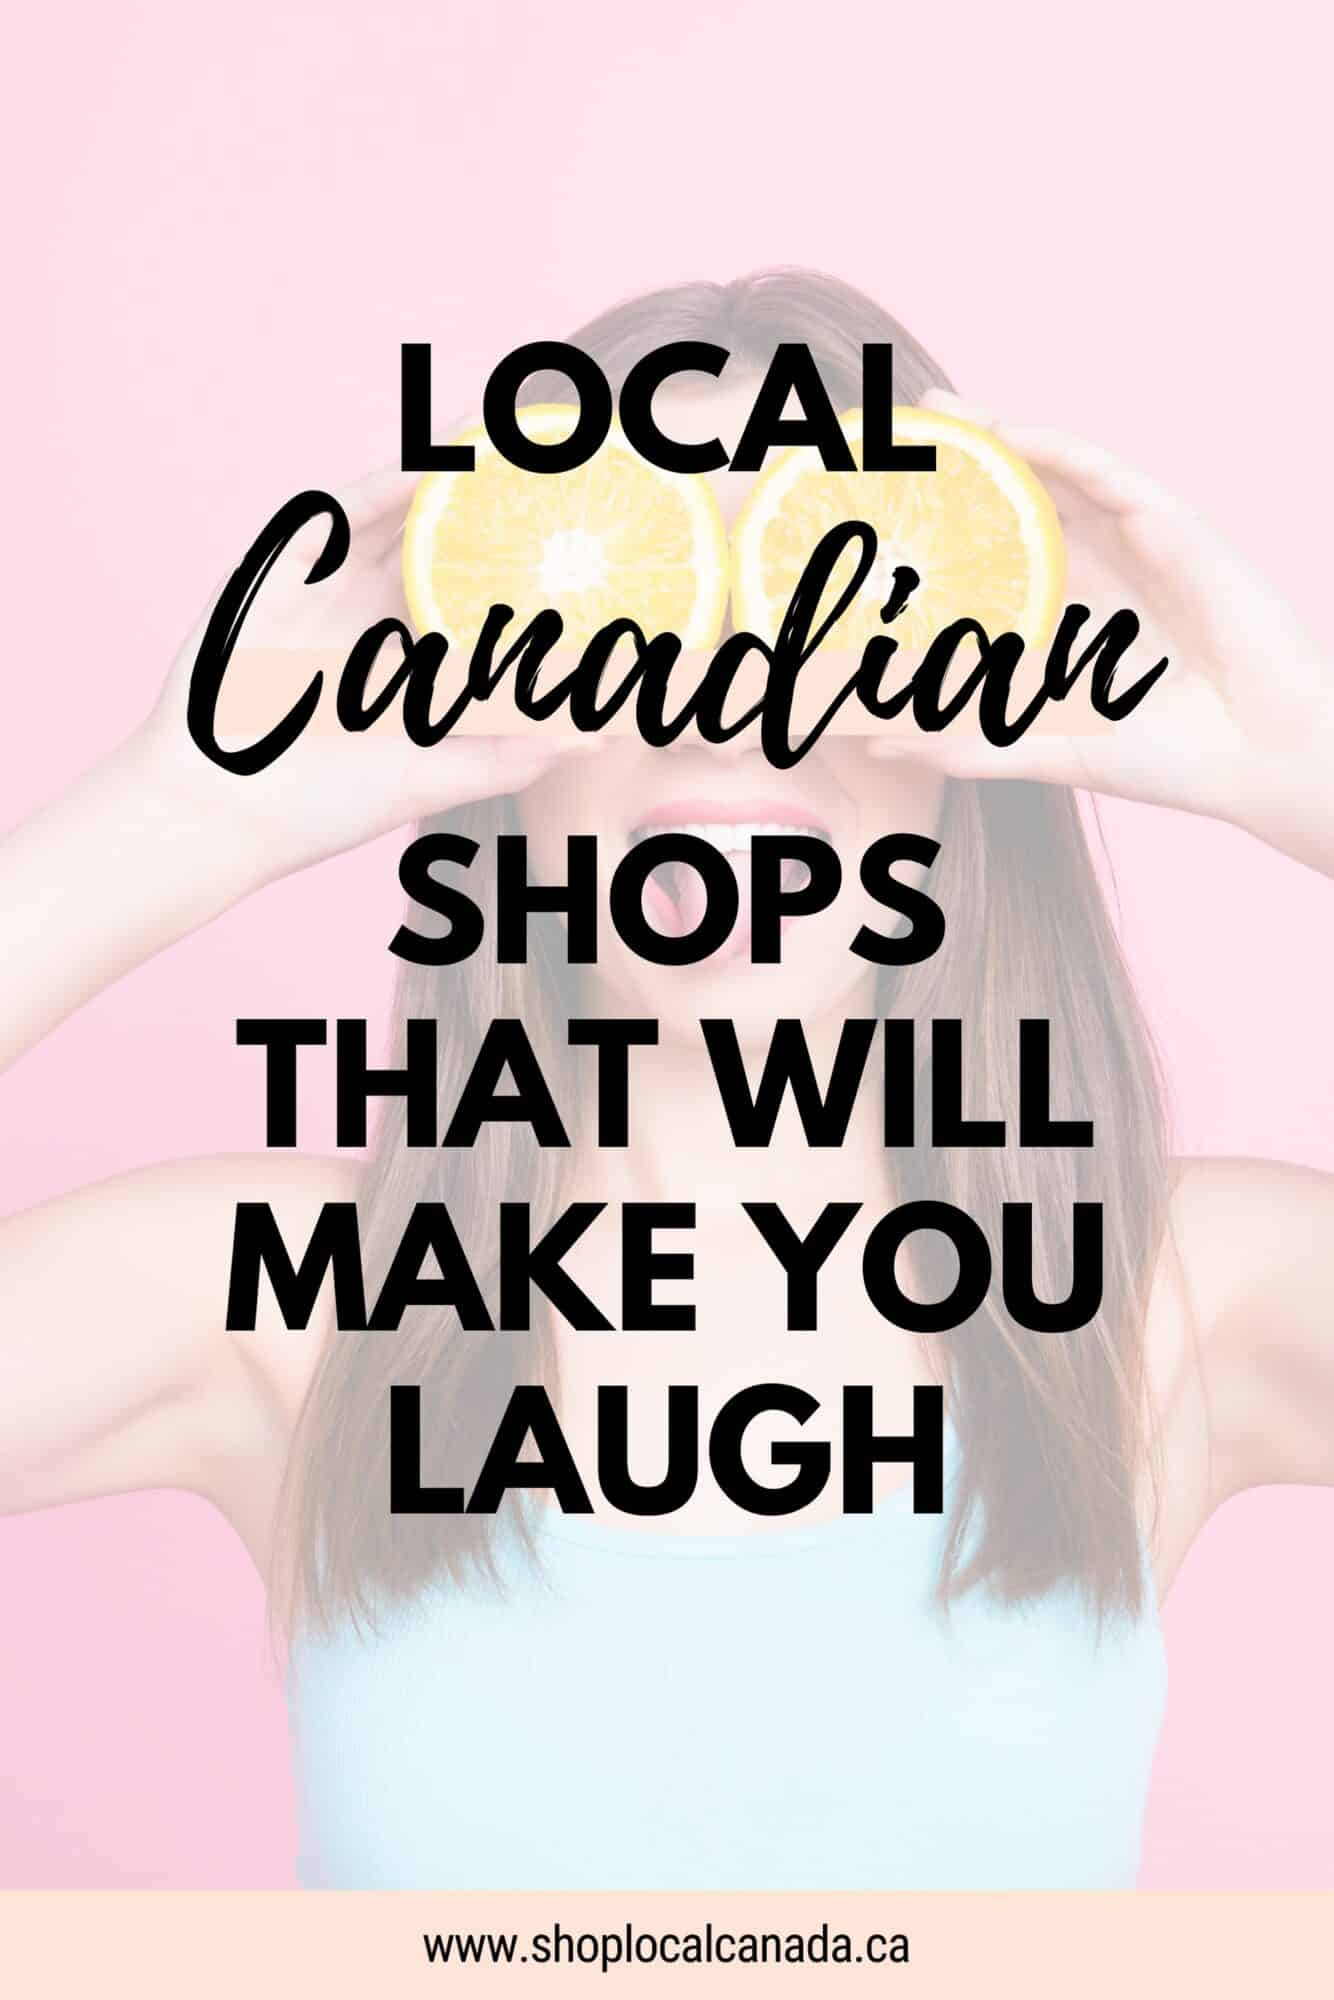 Funny Gift Ideas From Local Shops Across Canada